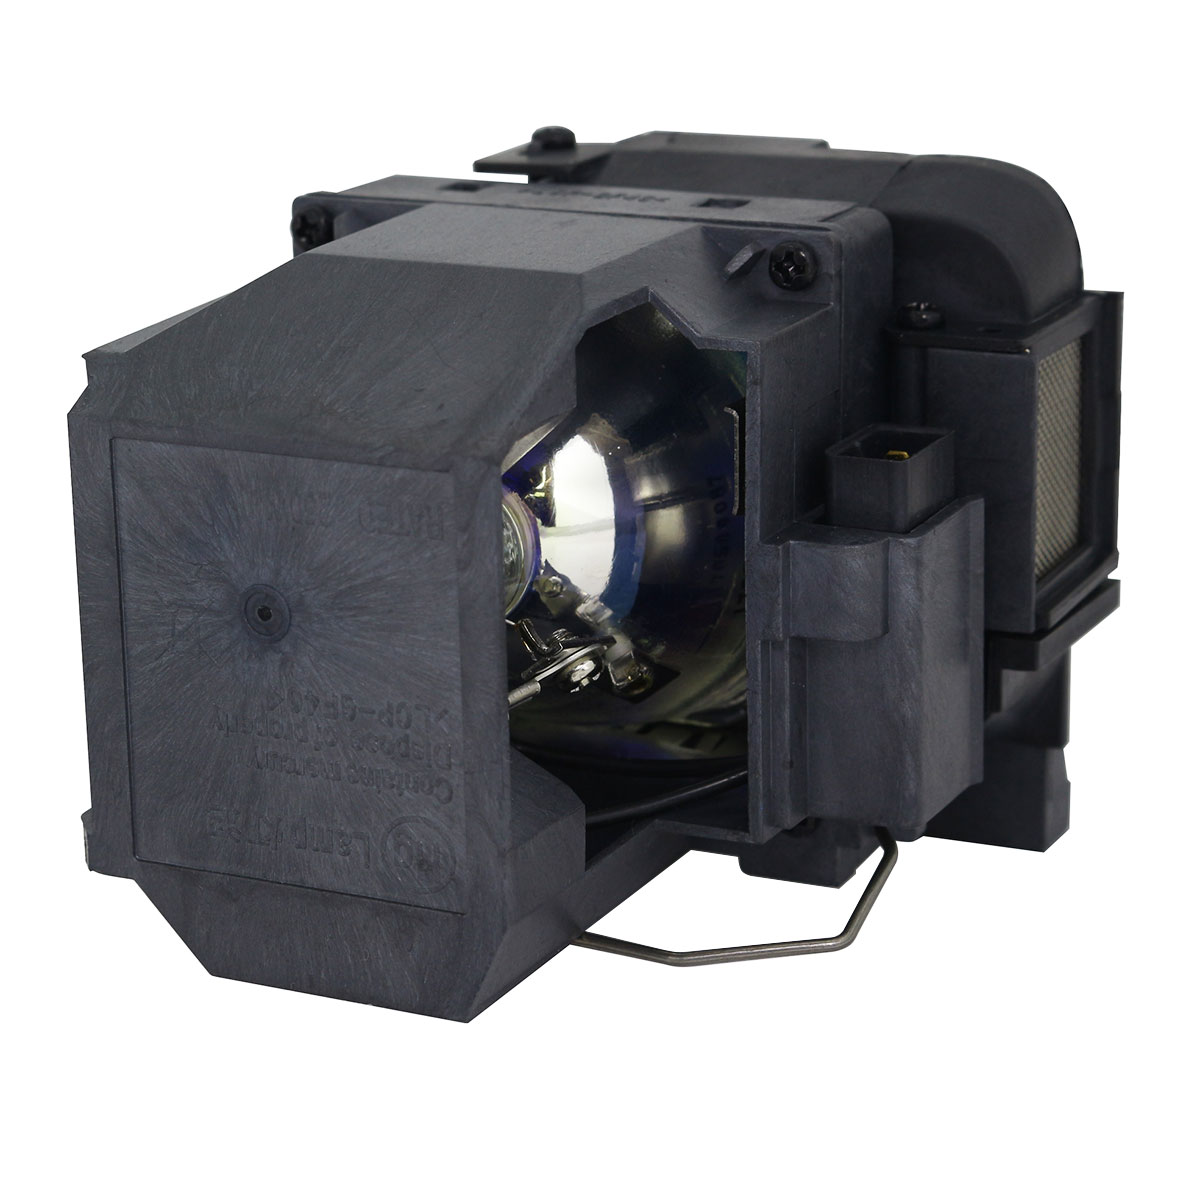 Original Osram Projector Replacement Lamp for Epson ELPLP89